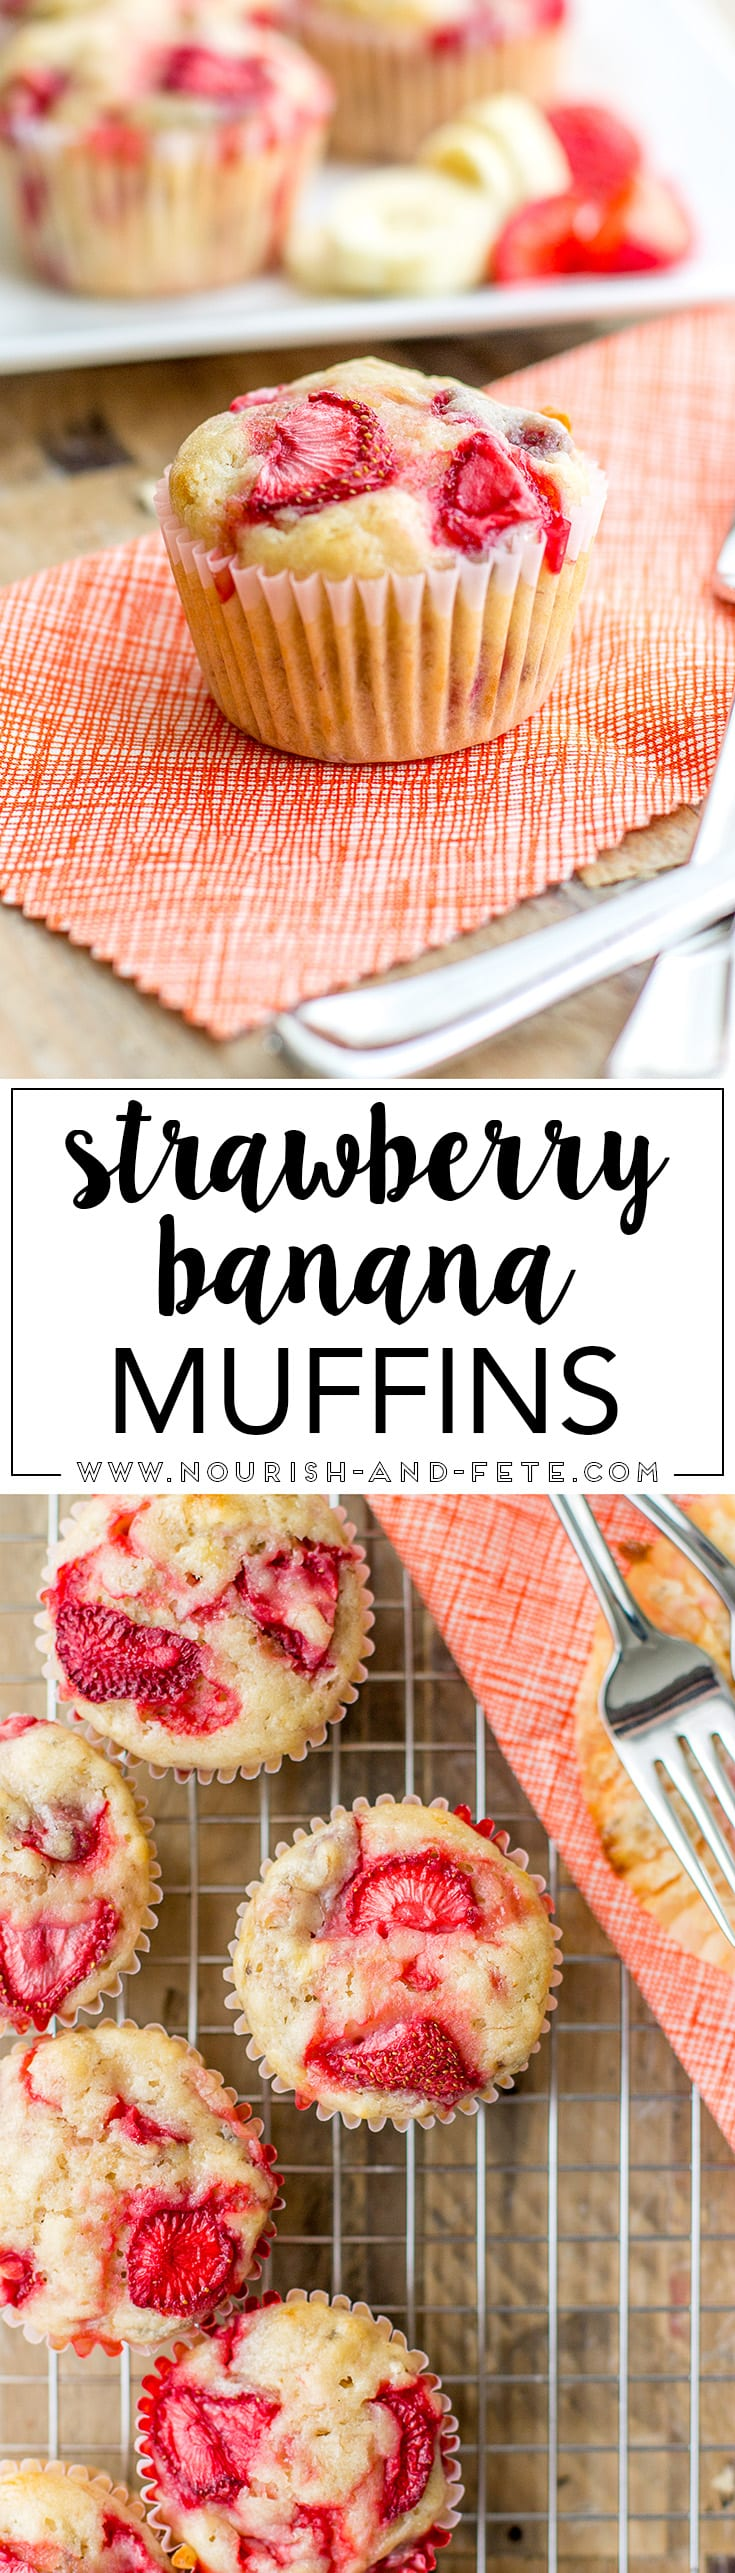 Luscious strawberry banana muffins, mixed quickly by hand in one bowl. http://www.nourish-and-fete.com